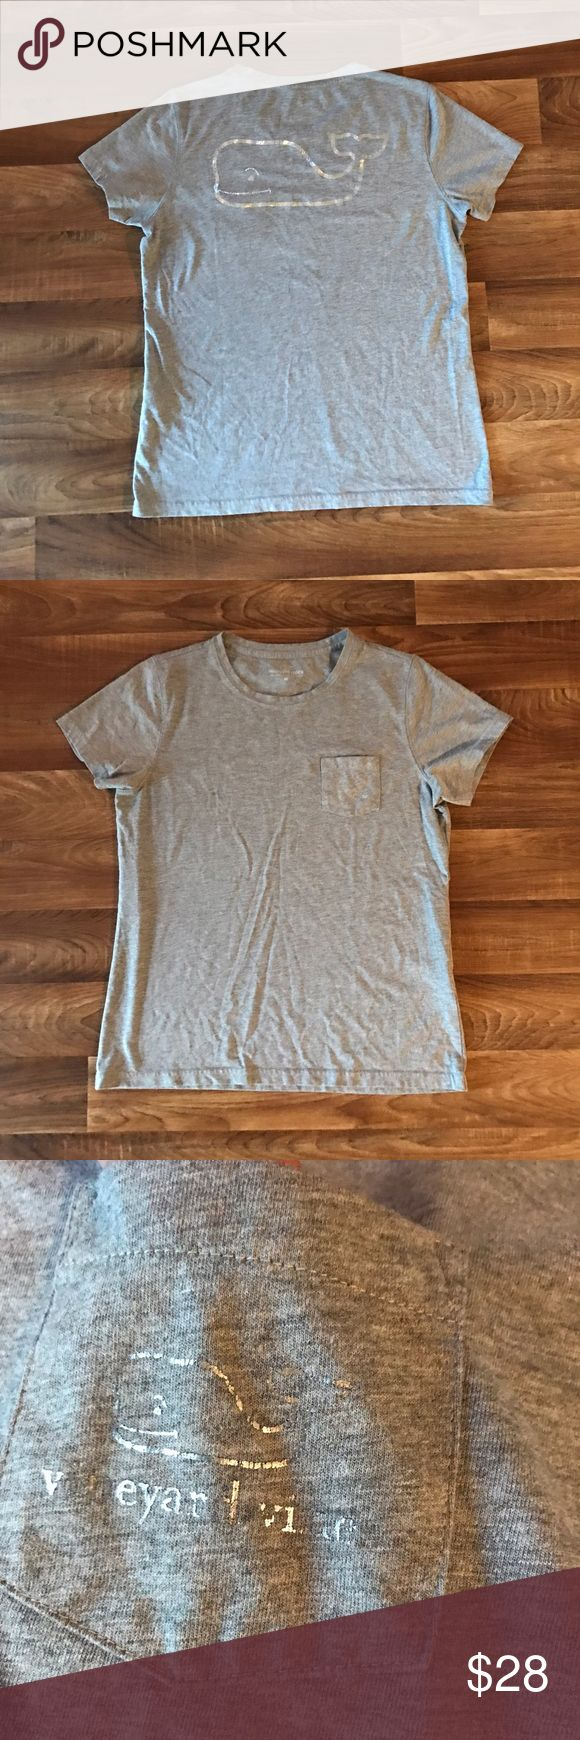 > NWOT - Vineyard Vines: Classic Pocket Tee! < NEW - NEVER WORN   > Vineyard Vines - Classic Pocket Tee <   -COLOR: Heather Gray  -Classic Pocket Tee (WOMEN'S)  -NEVER WORN  -Heather gray and logo is distressed looking , color is silver (logo)   -PLEASE READ ABOVE RULES-  Happy Poshing!! ✌🏻 Vineyard Vines Tops Tees - Short Sleeve